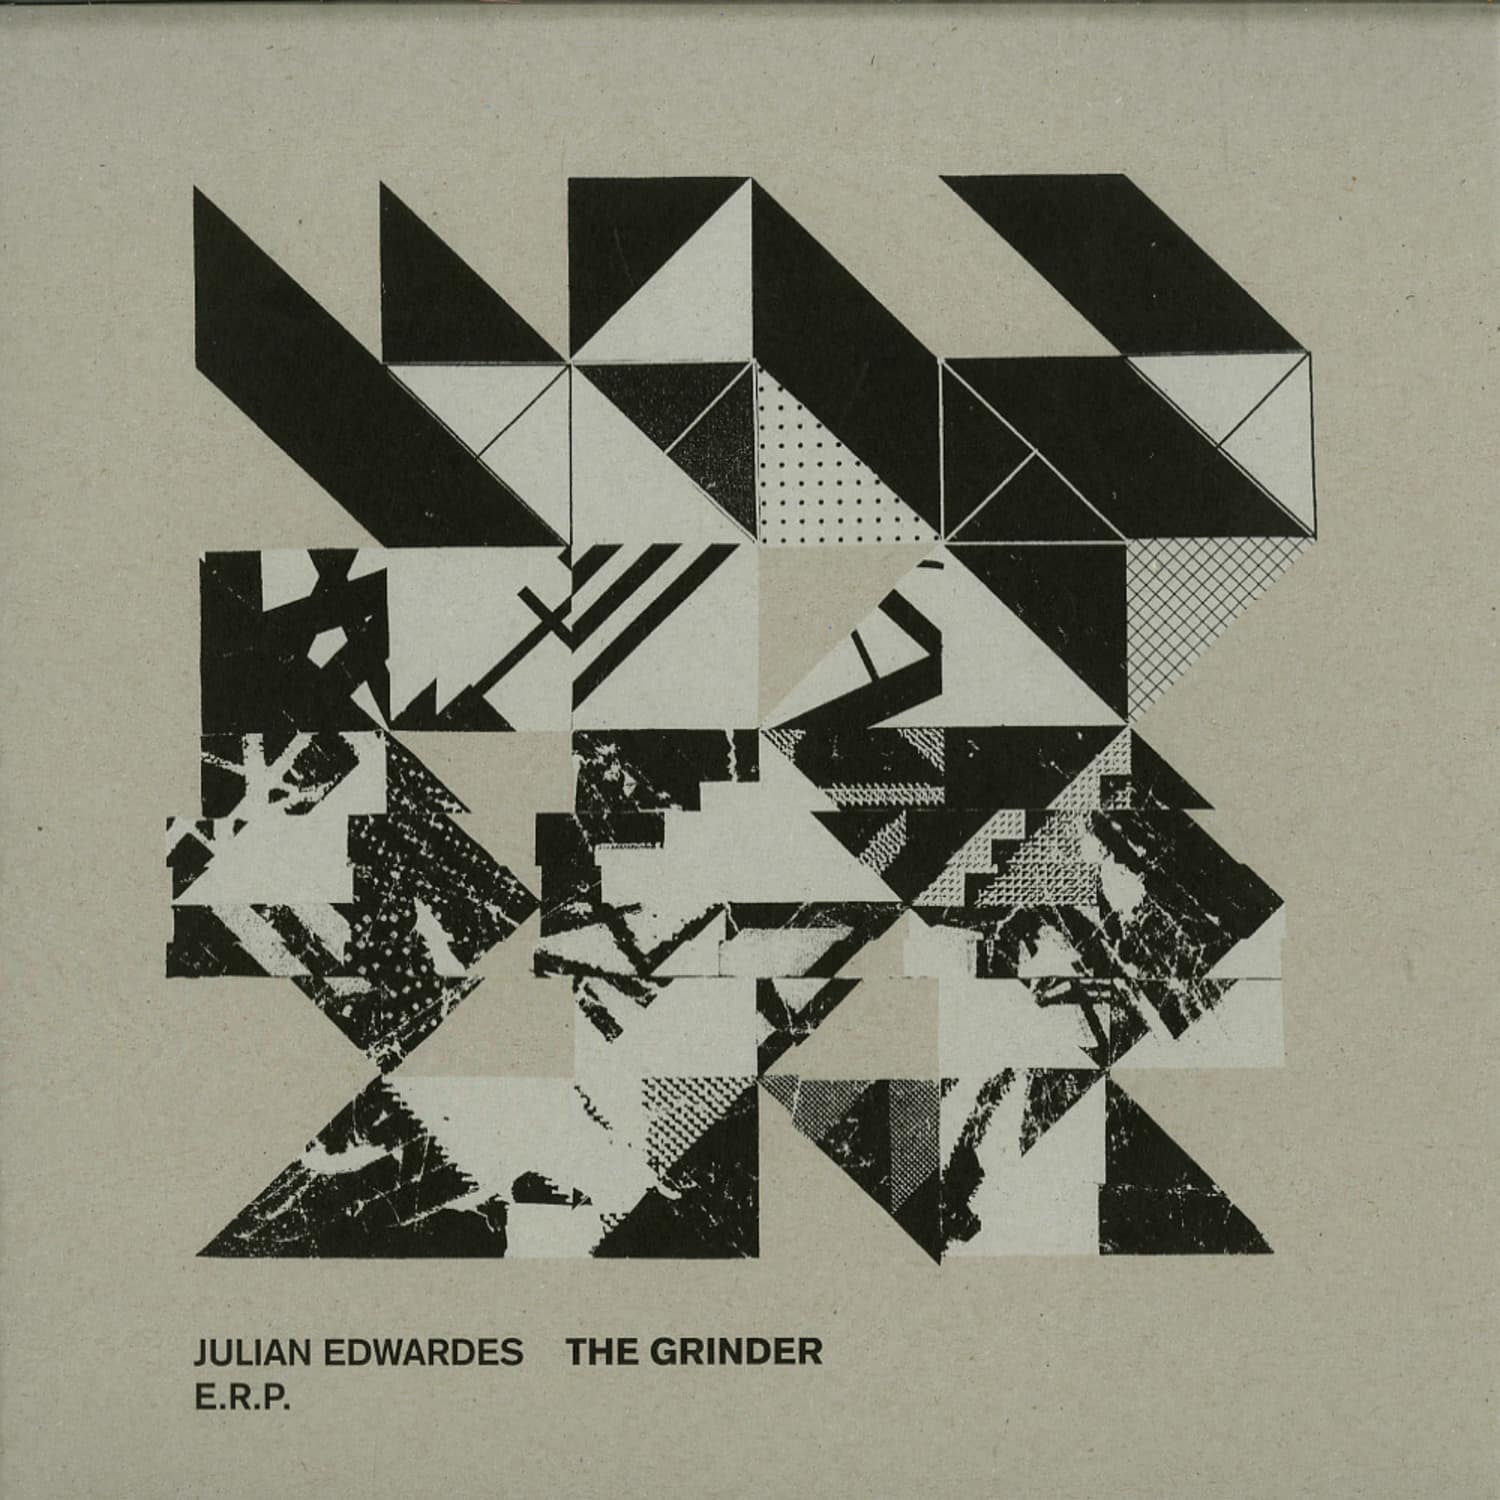 Julian Edwardes / E.R.P. - THE GRINDER